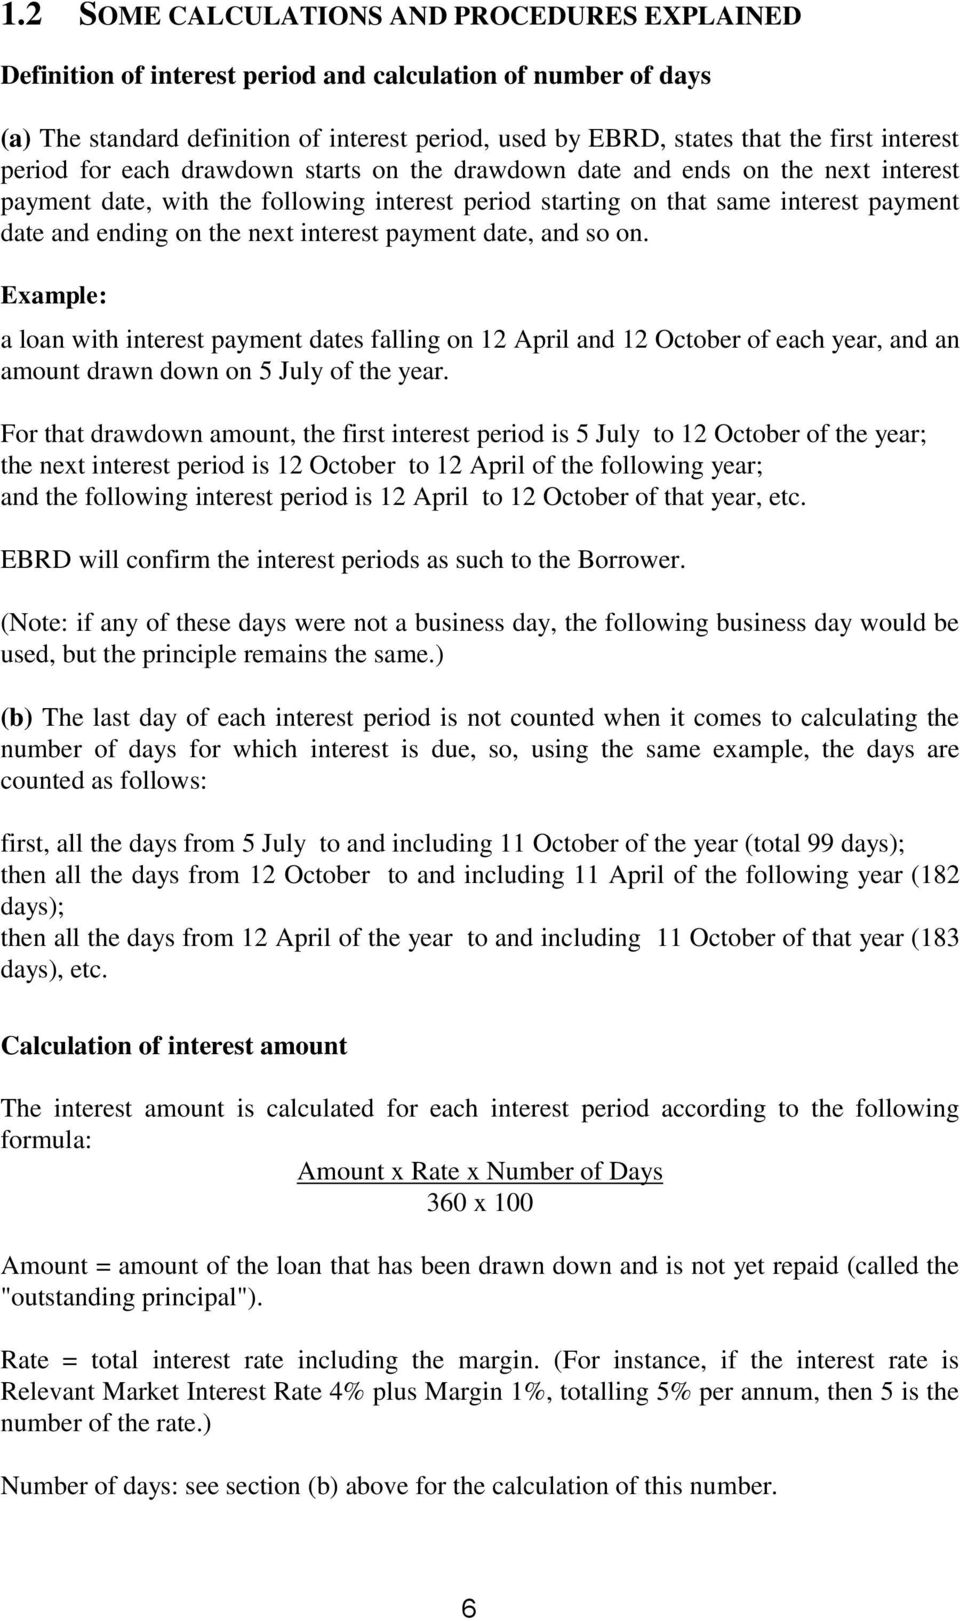 the next interest payment date, and so on. Example: a loan with interest payment dates falling on 12 April and 12 October of each year, and an amount drawn down on 5 July of the year.